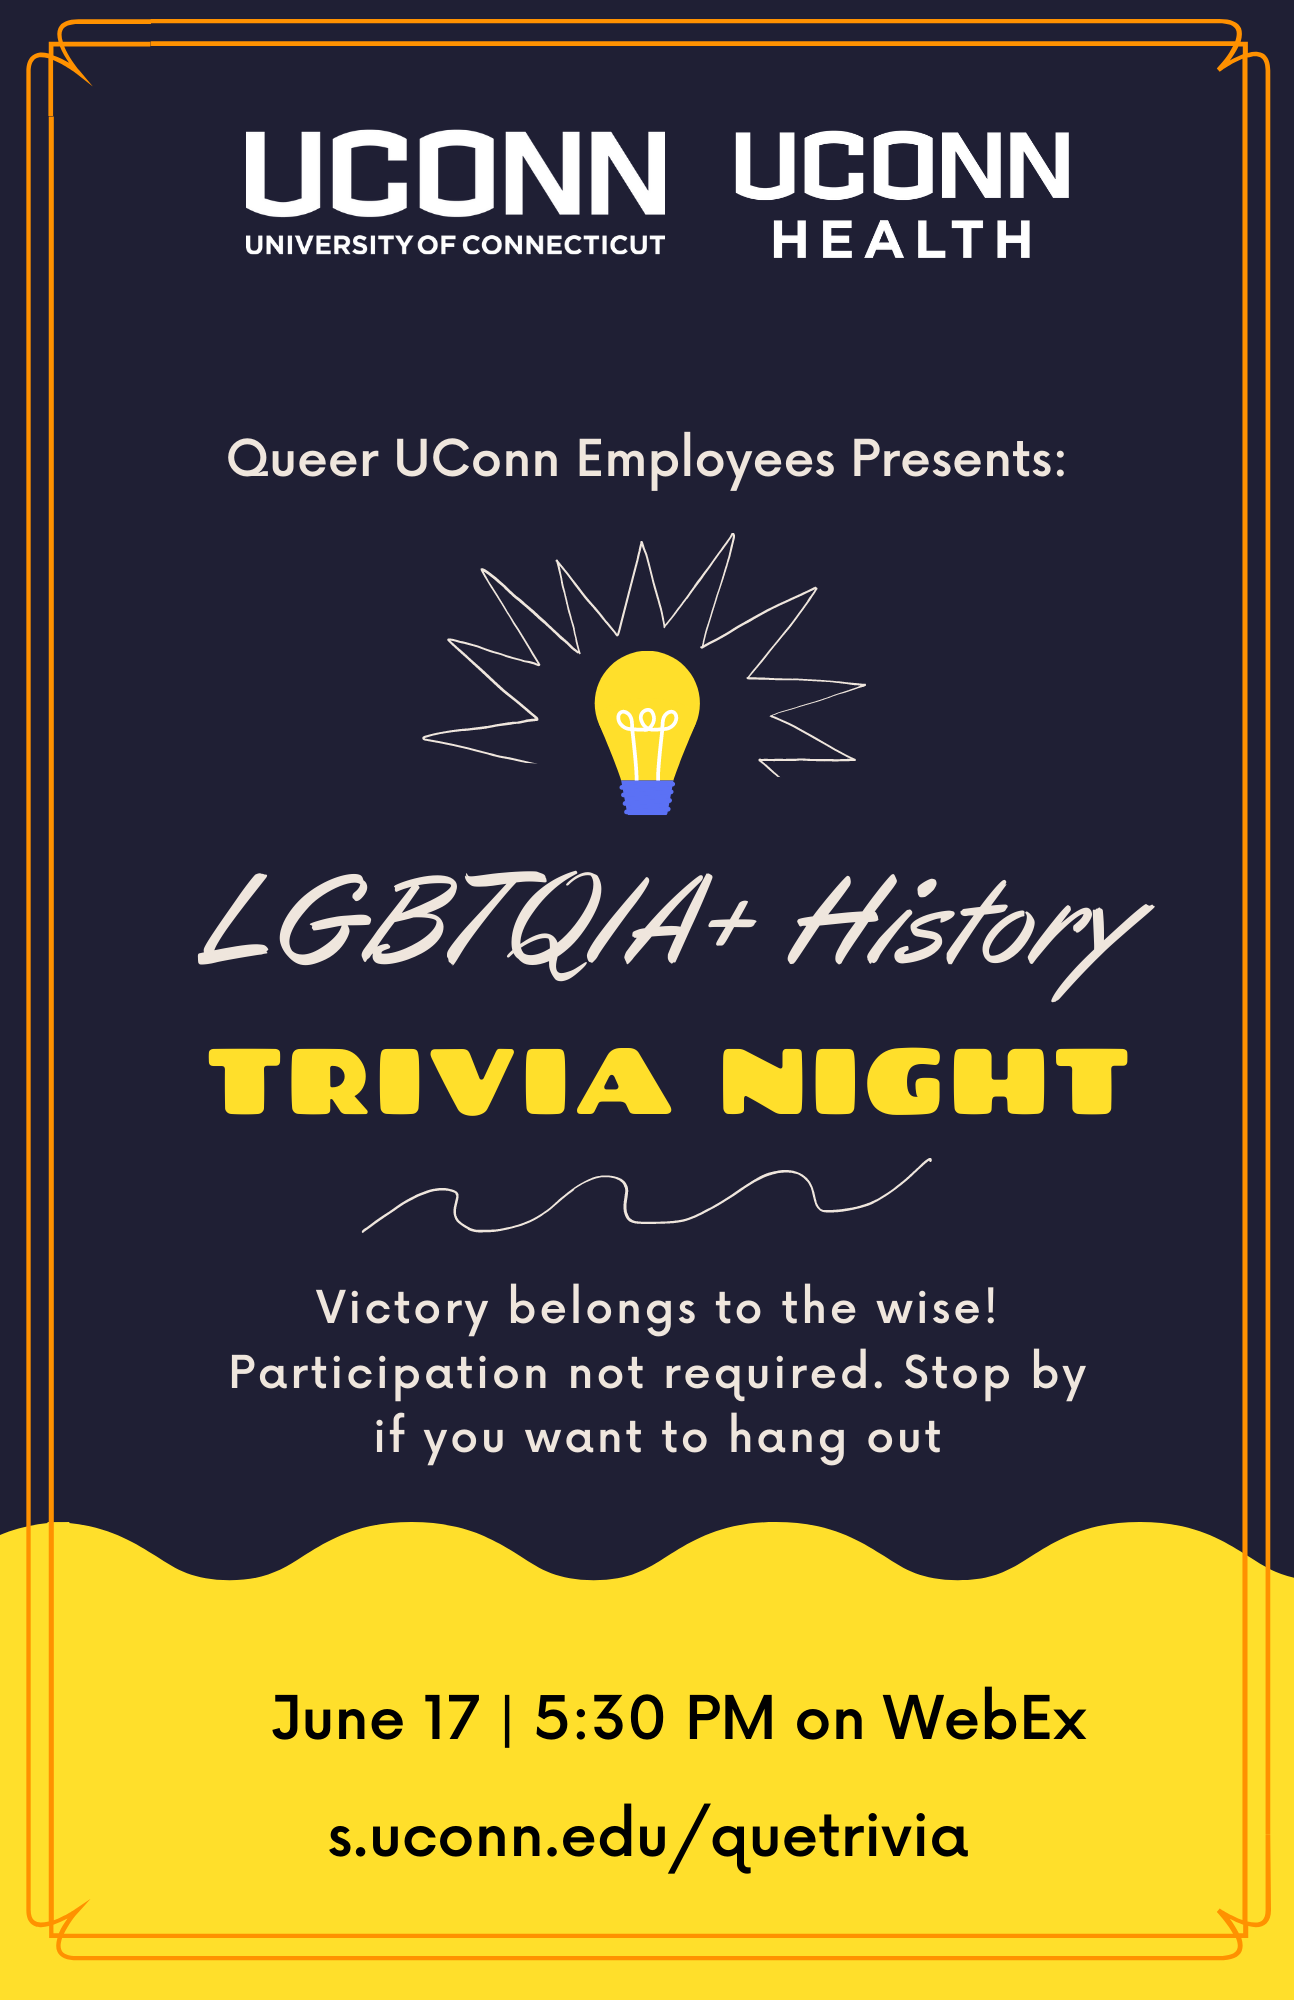 Image button to PDF flyer for June 17, 2021 Virtual Trivia Night